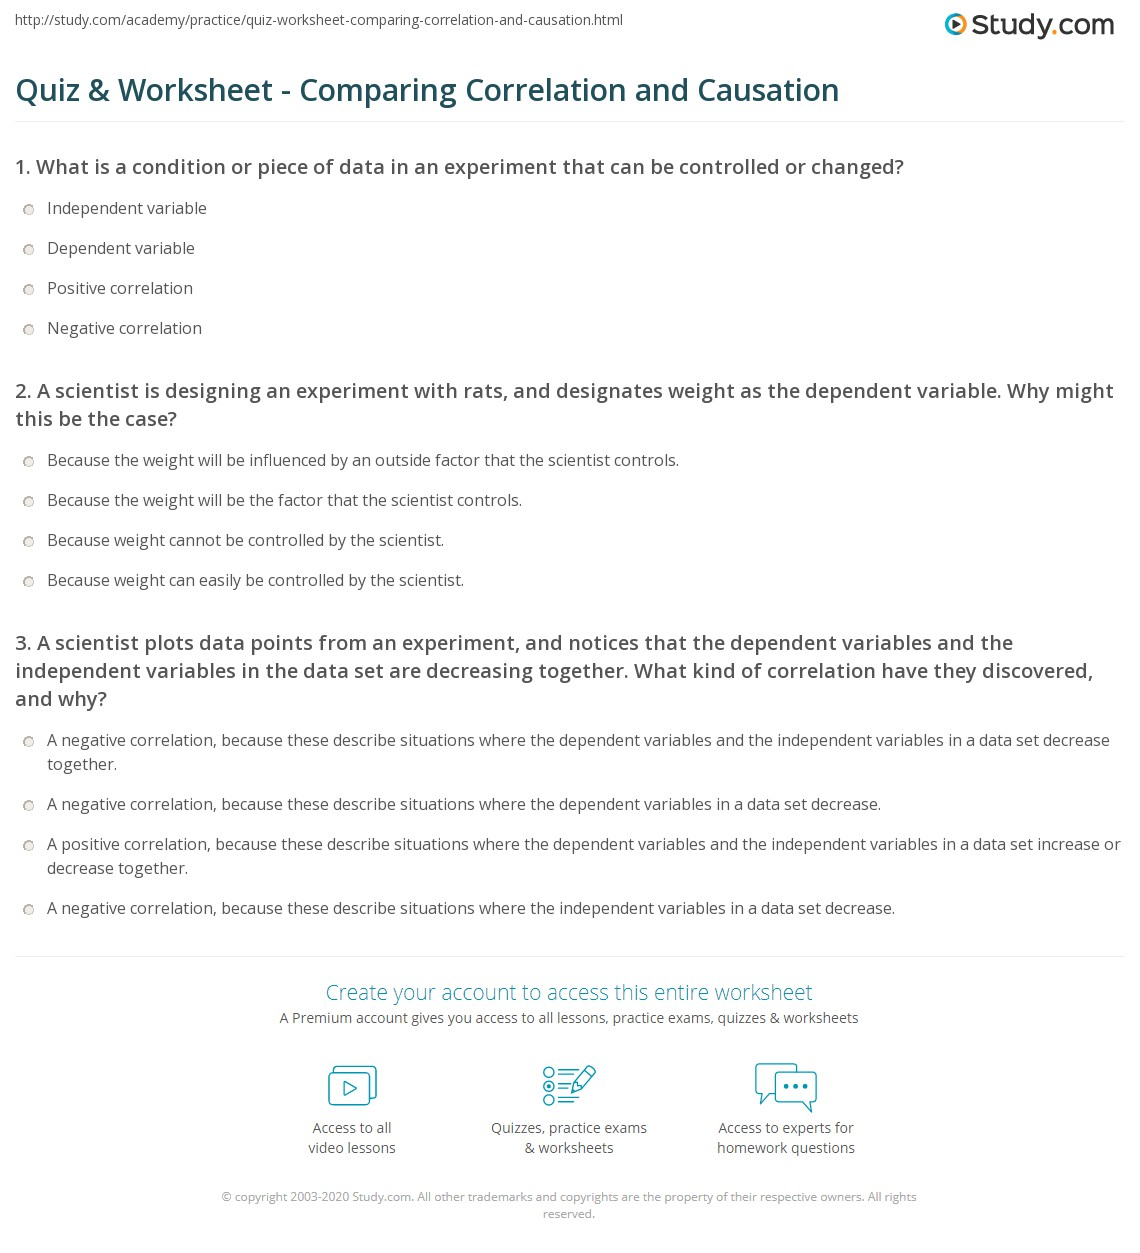 Aldiablosus  Remarkable Quiz Amp Worksheet  Comparing Correlation And Causation  Studycom With Goodlooking Print Correlation Vs Causation Differences Amp Definition Worksheet With Archaic D Shapes Free Worksheets Also Worksheet On Reflection In Addition S Chart Worksheet And D Shape Worksheets Ks As Well As Worksheets For Figurative Language Additionally Present Continous Worksheet From Studycom With Aldiablosus  Goodlooking Quiz Amp Worksheet  Comparing Correlation And Causation  Studycom With Archaic Print Correlation Vs Causation Differences Amp Definition Worksheet And Remarkable D Shapes Free Worksheets Also Worksheet On Reflection In Addition S Chart Worksheet From Studycom